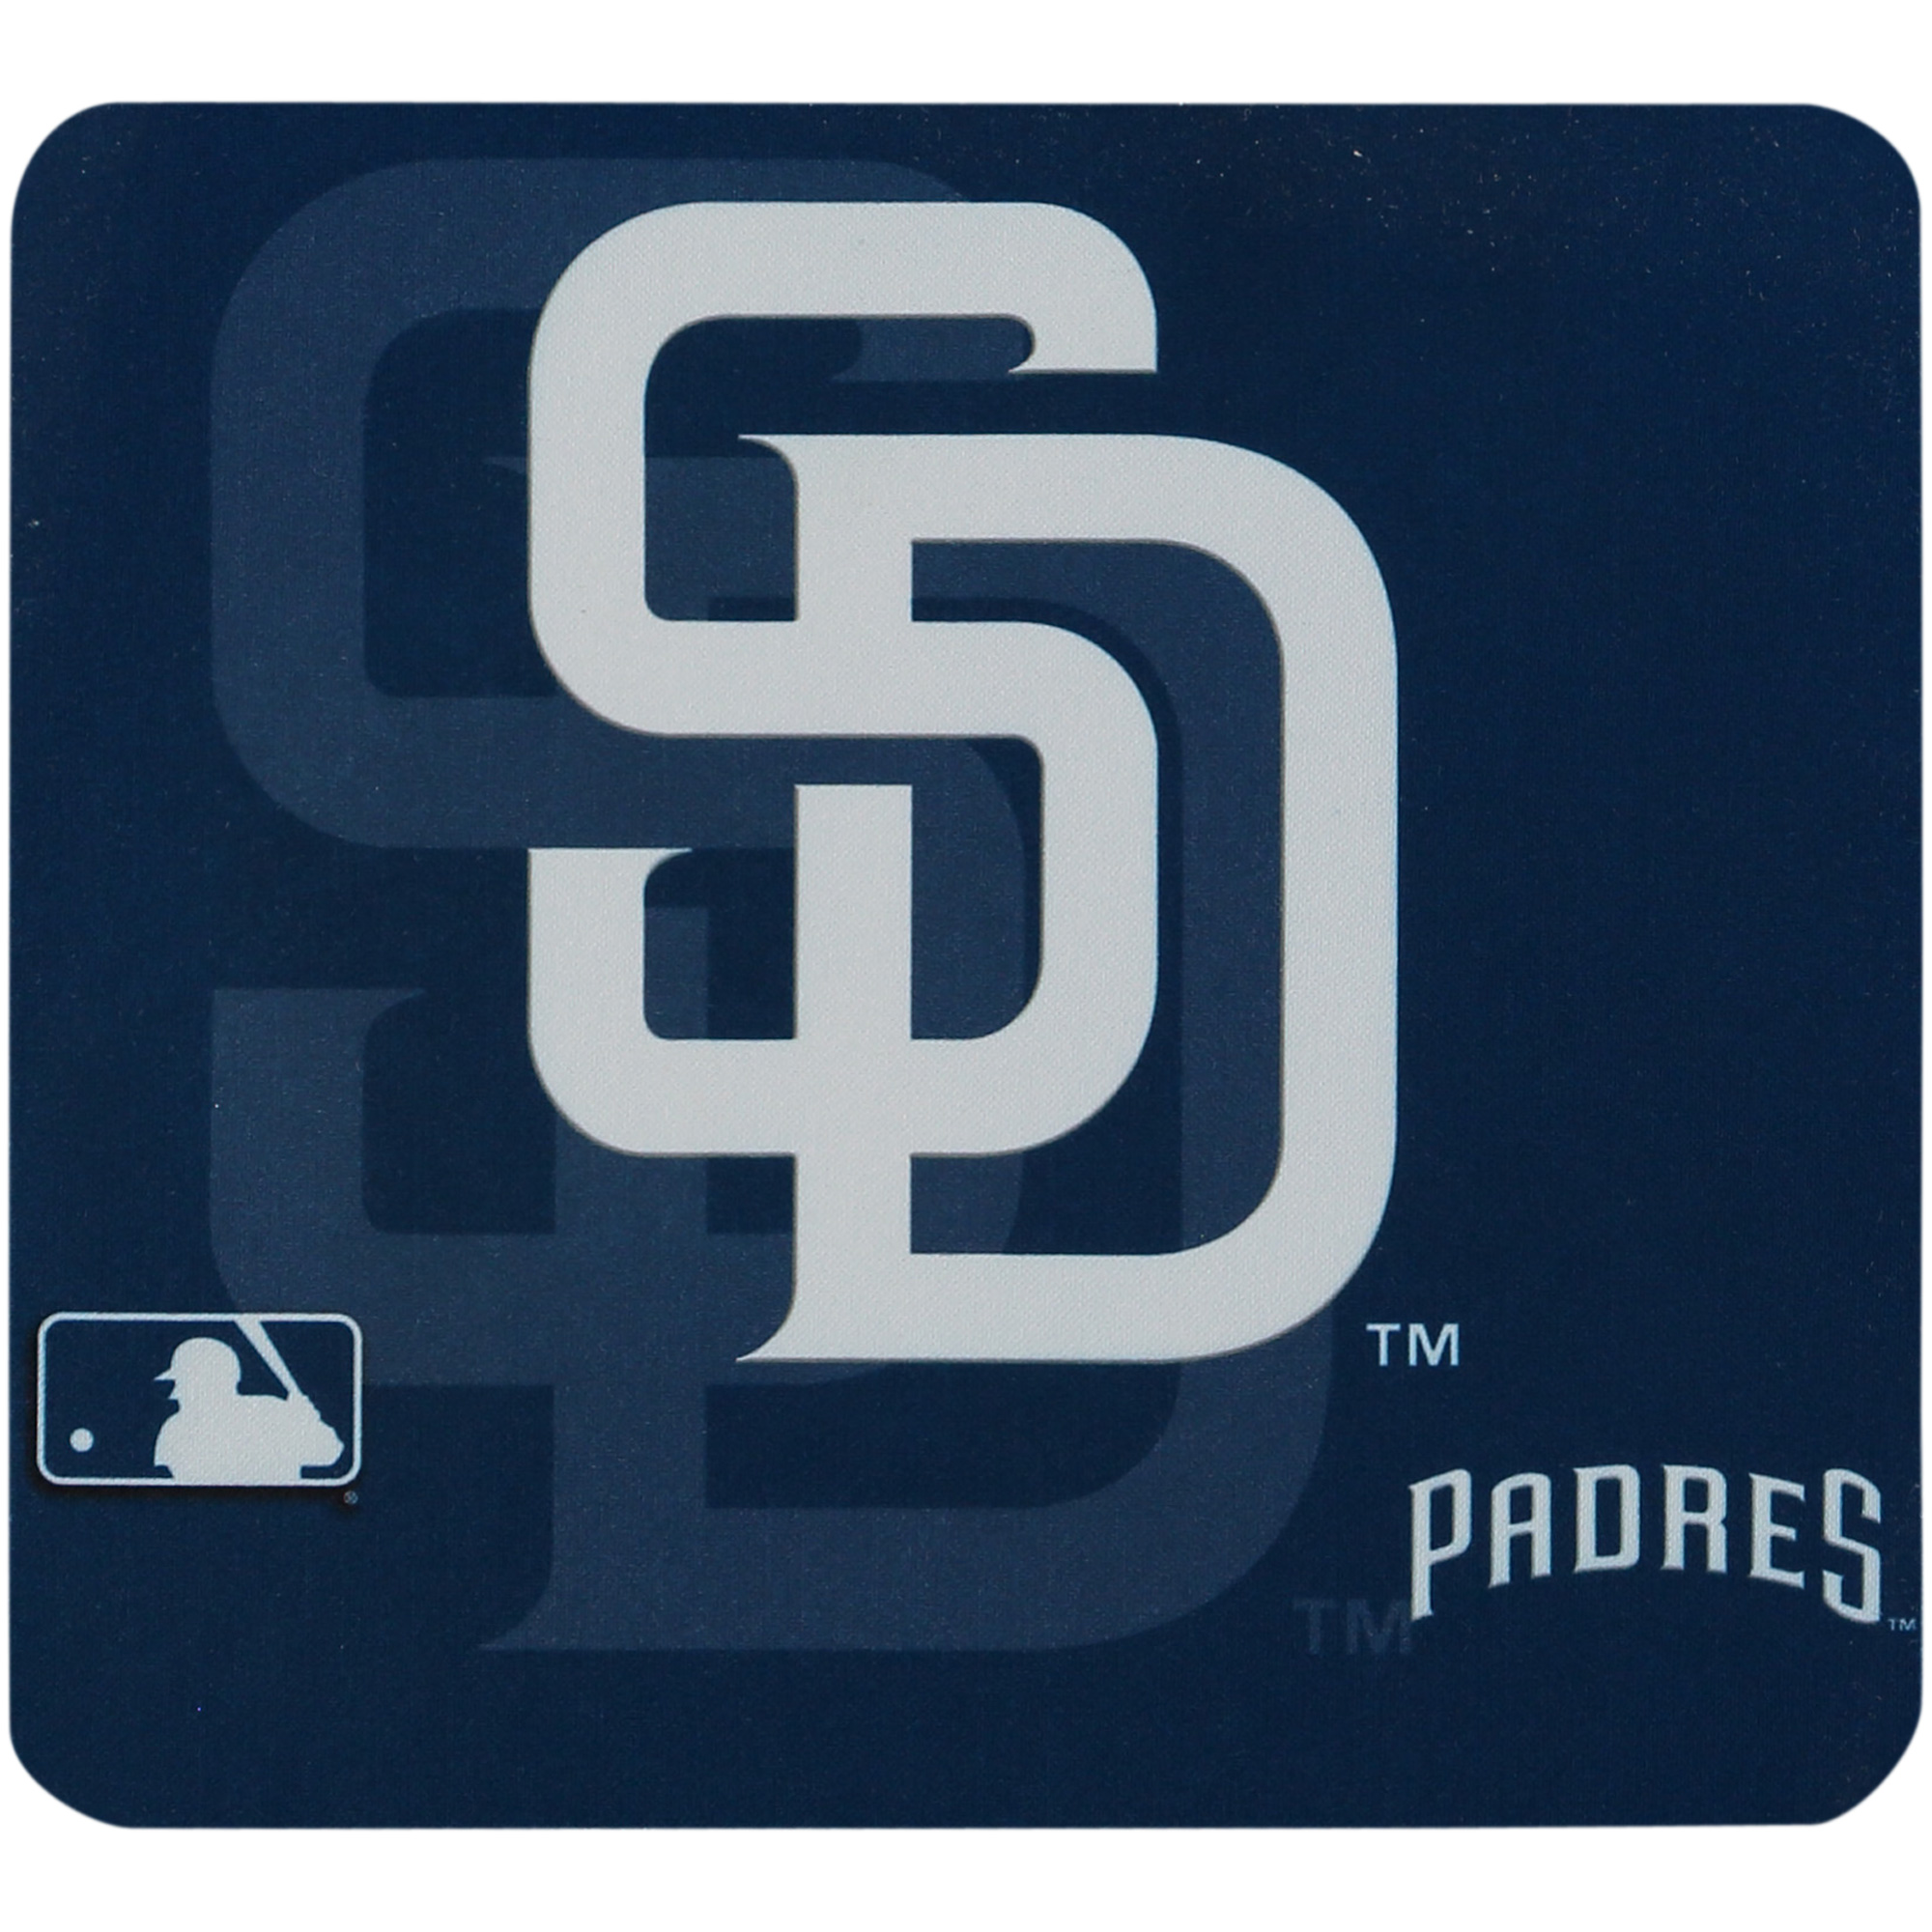 San Diego Padres 3D Mouse Pad - No Size